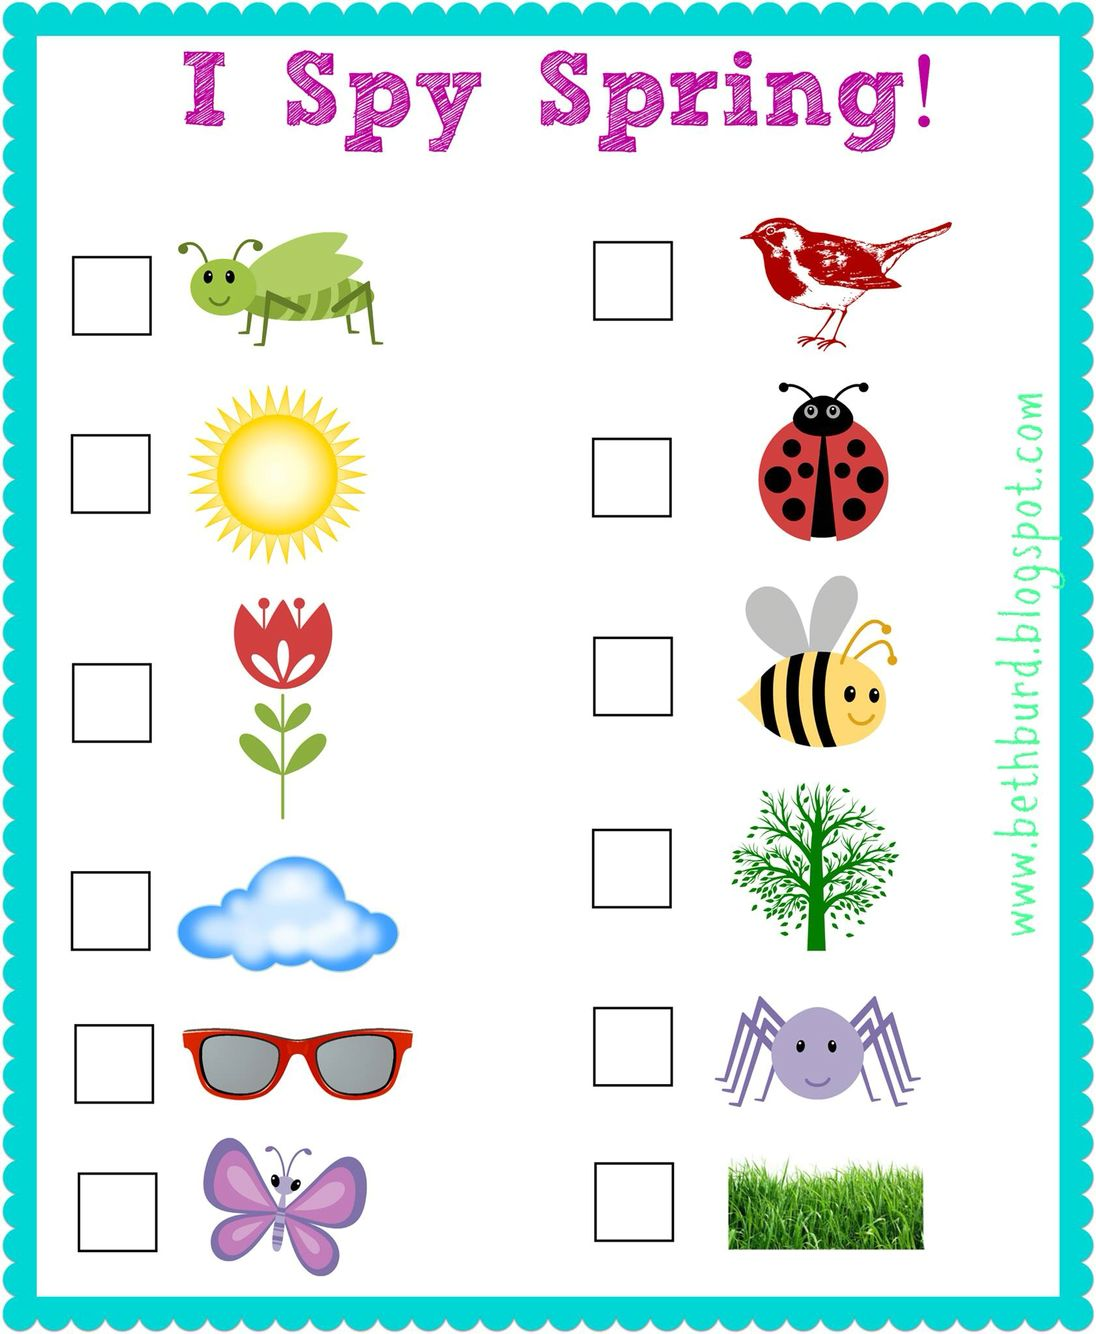 Free Spring I Spy Outdoor Printable Perfect For Those Fun